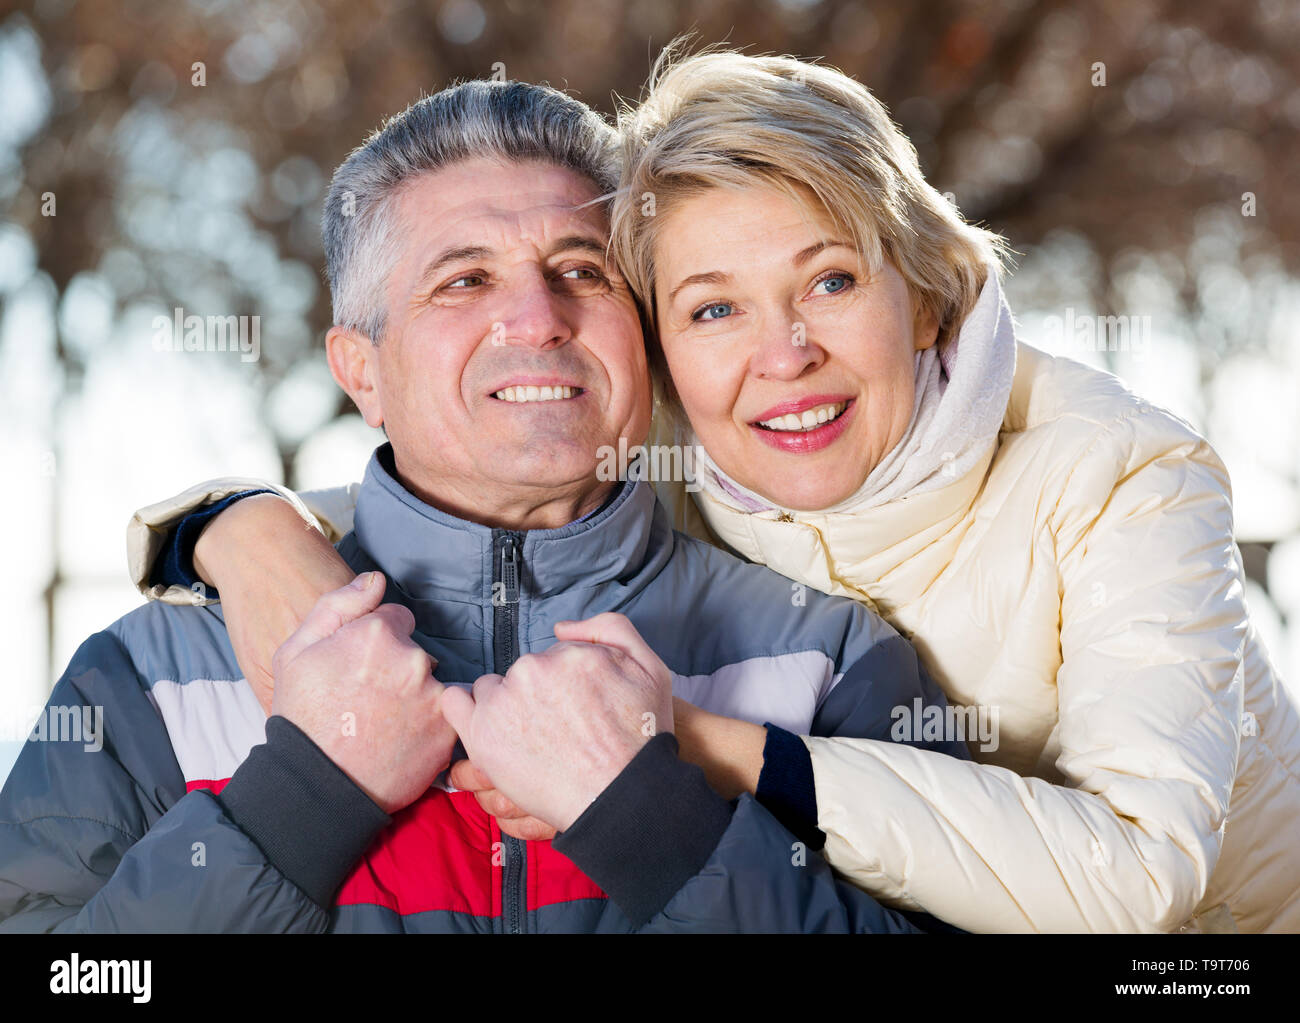 Glad mature married couple embracing on sunny day in park - Stock Image